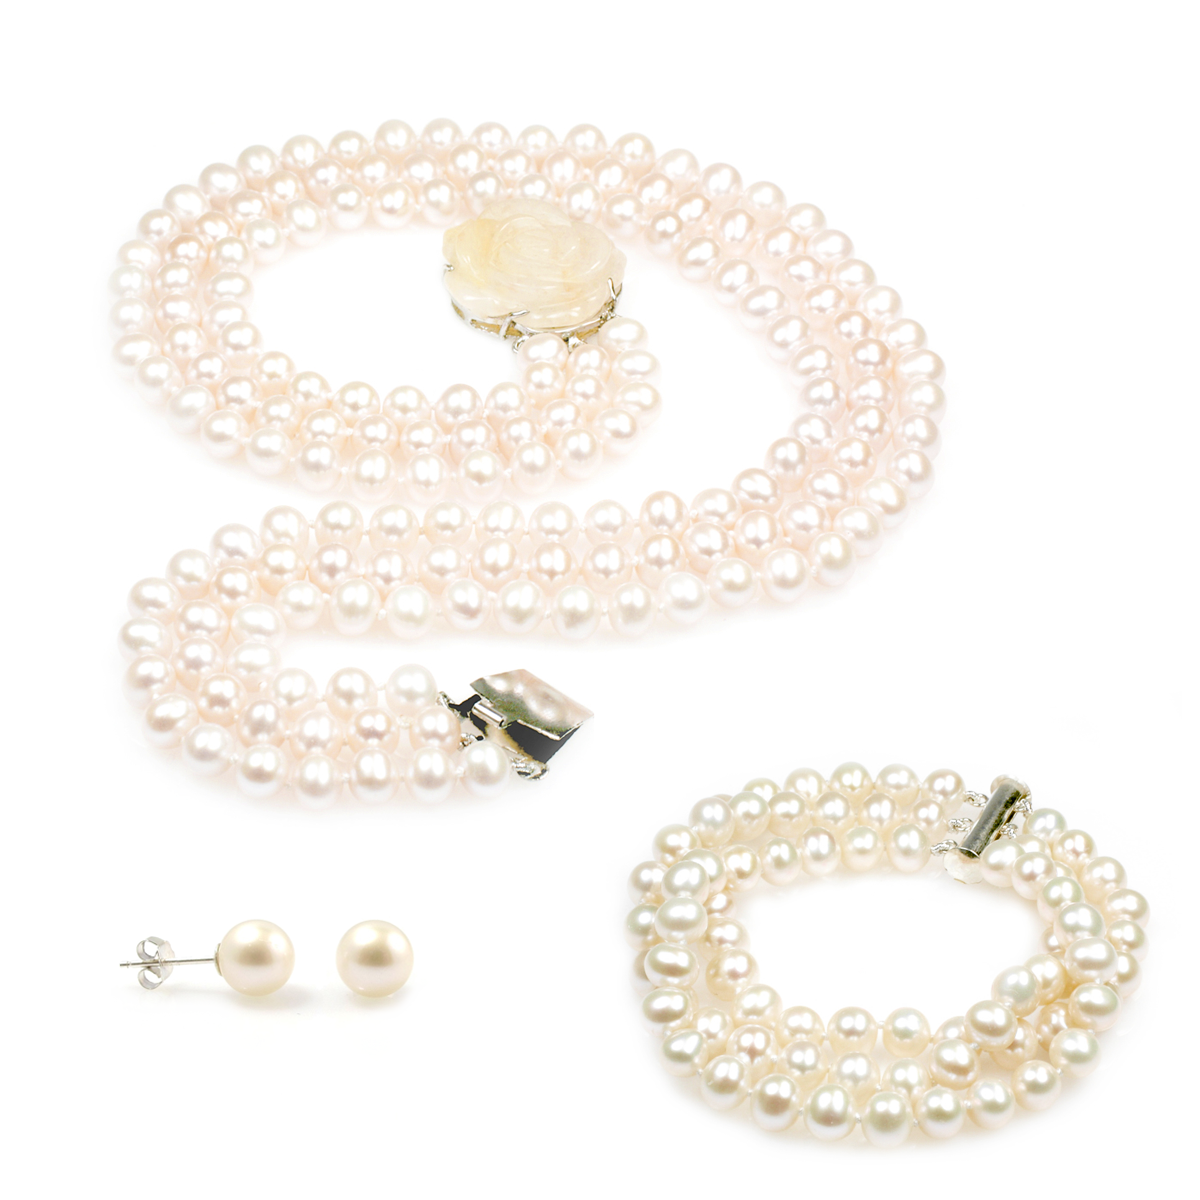 Snow White pearl bridal jewellery set - Luxurious Three Strand ...